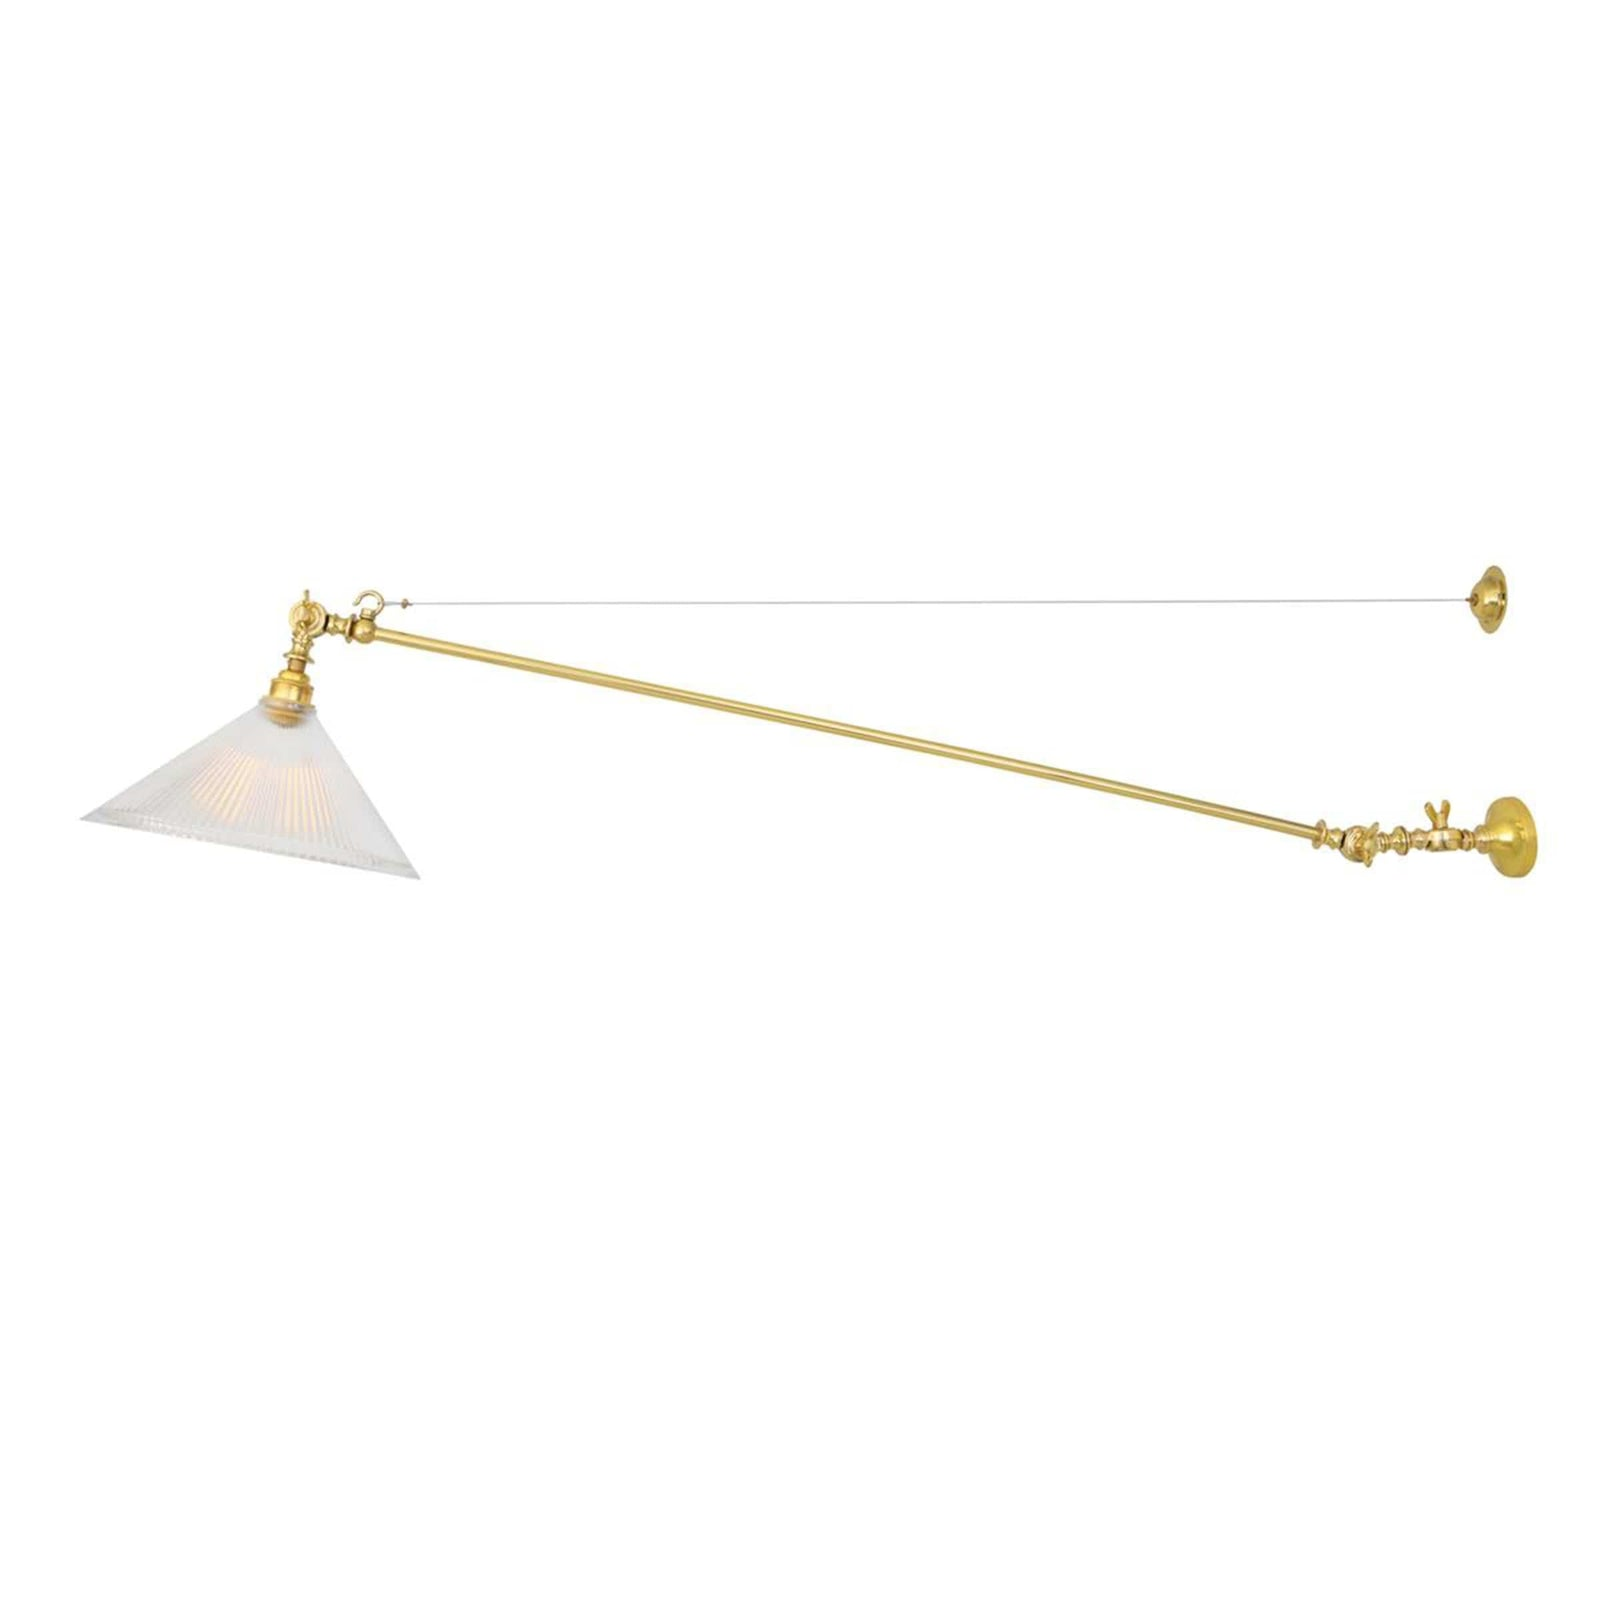 Mullan Lighting Lighting Polished Brass Nyx Adjustable Coolie Glass Wall Light